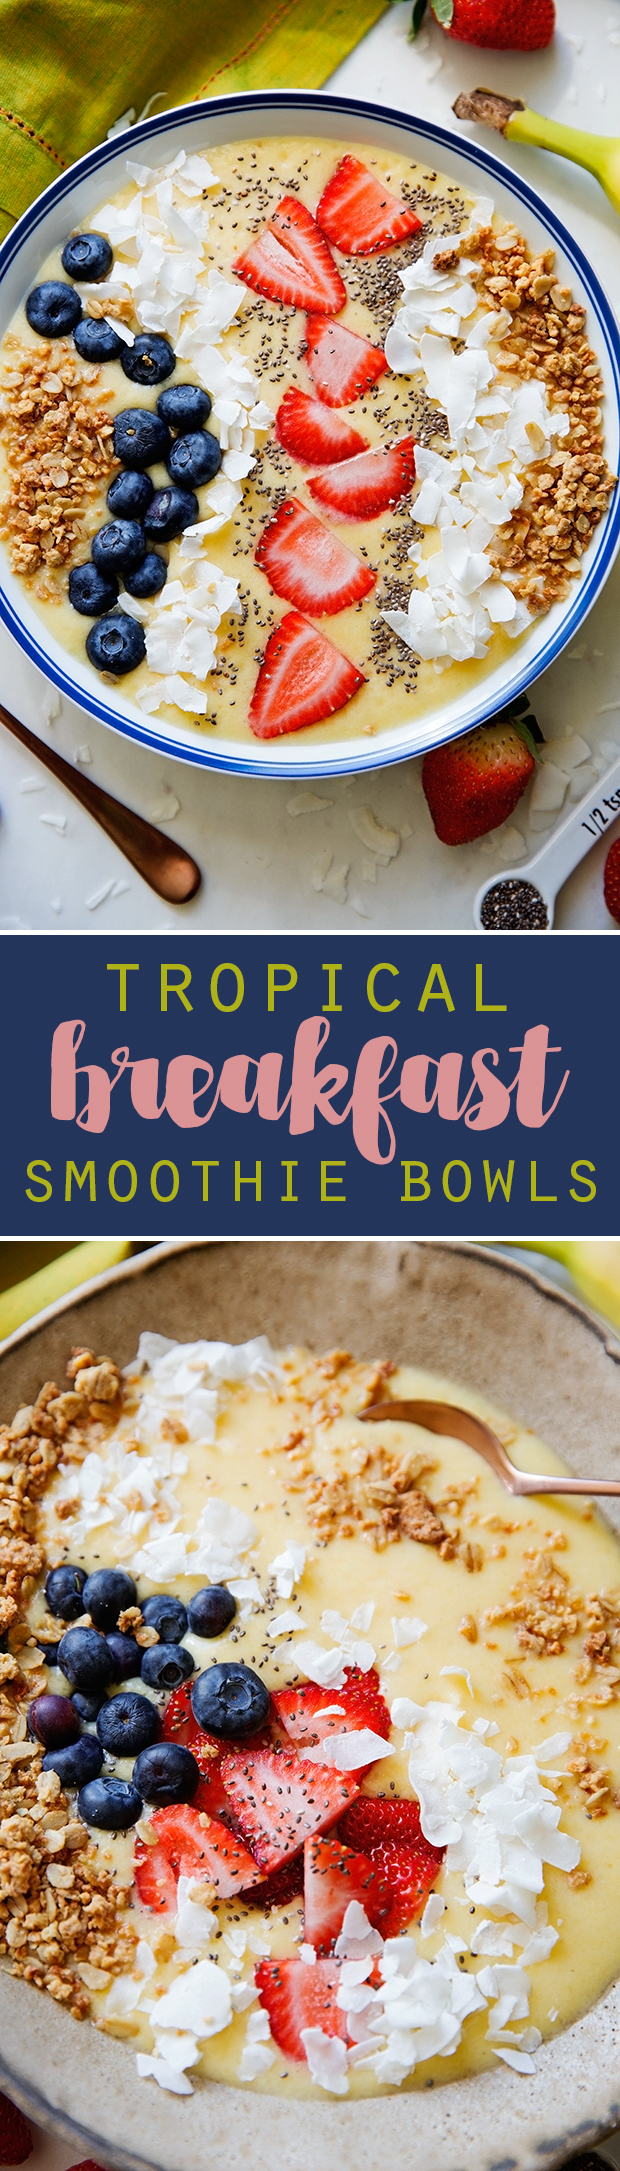 Tropical Breakfast Smoothie Bowls - Loaded with nutrition and easy to make! #smoothie #smoothiebowl #tropicalsmoothie | Littlespicejar.com